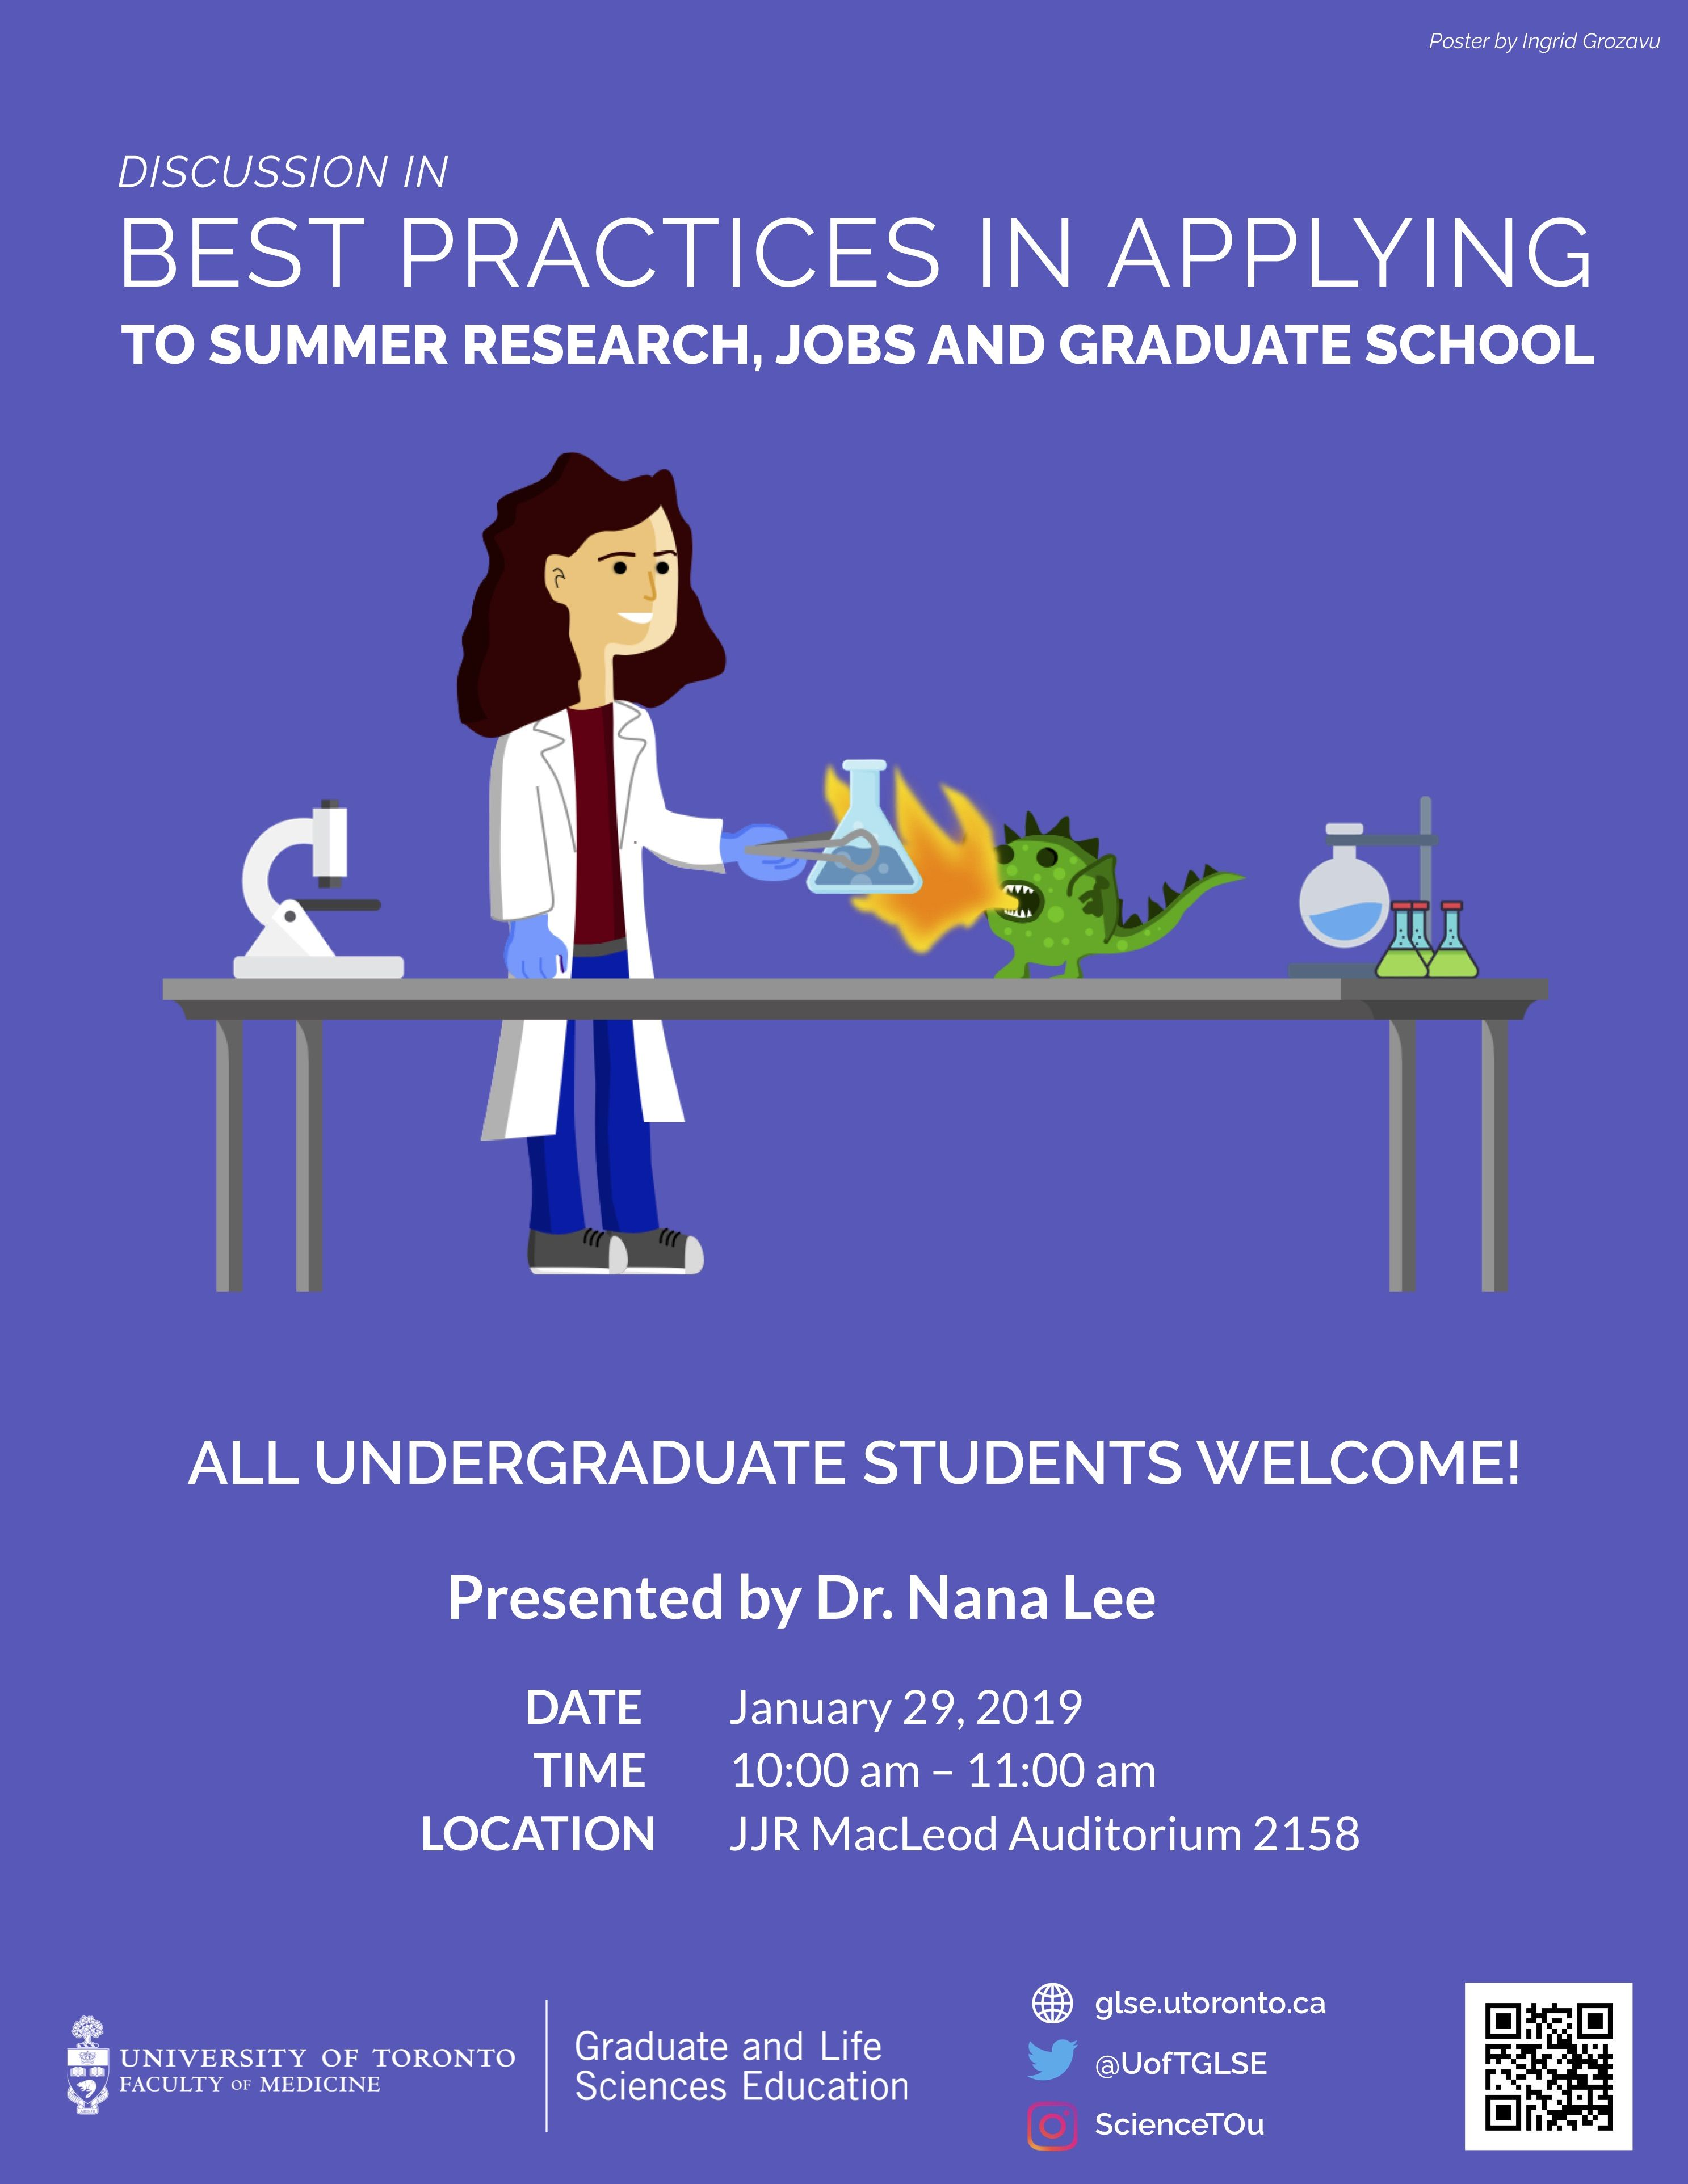 Discussion in Best Practices in Applying to Summer Research Jobs Graduate School